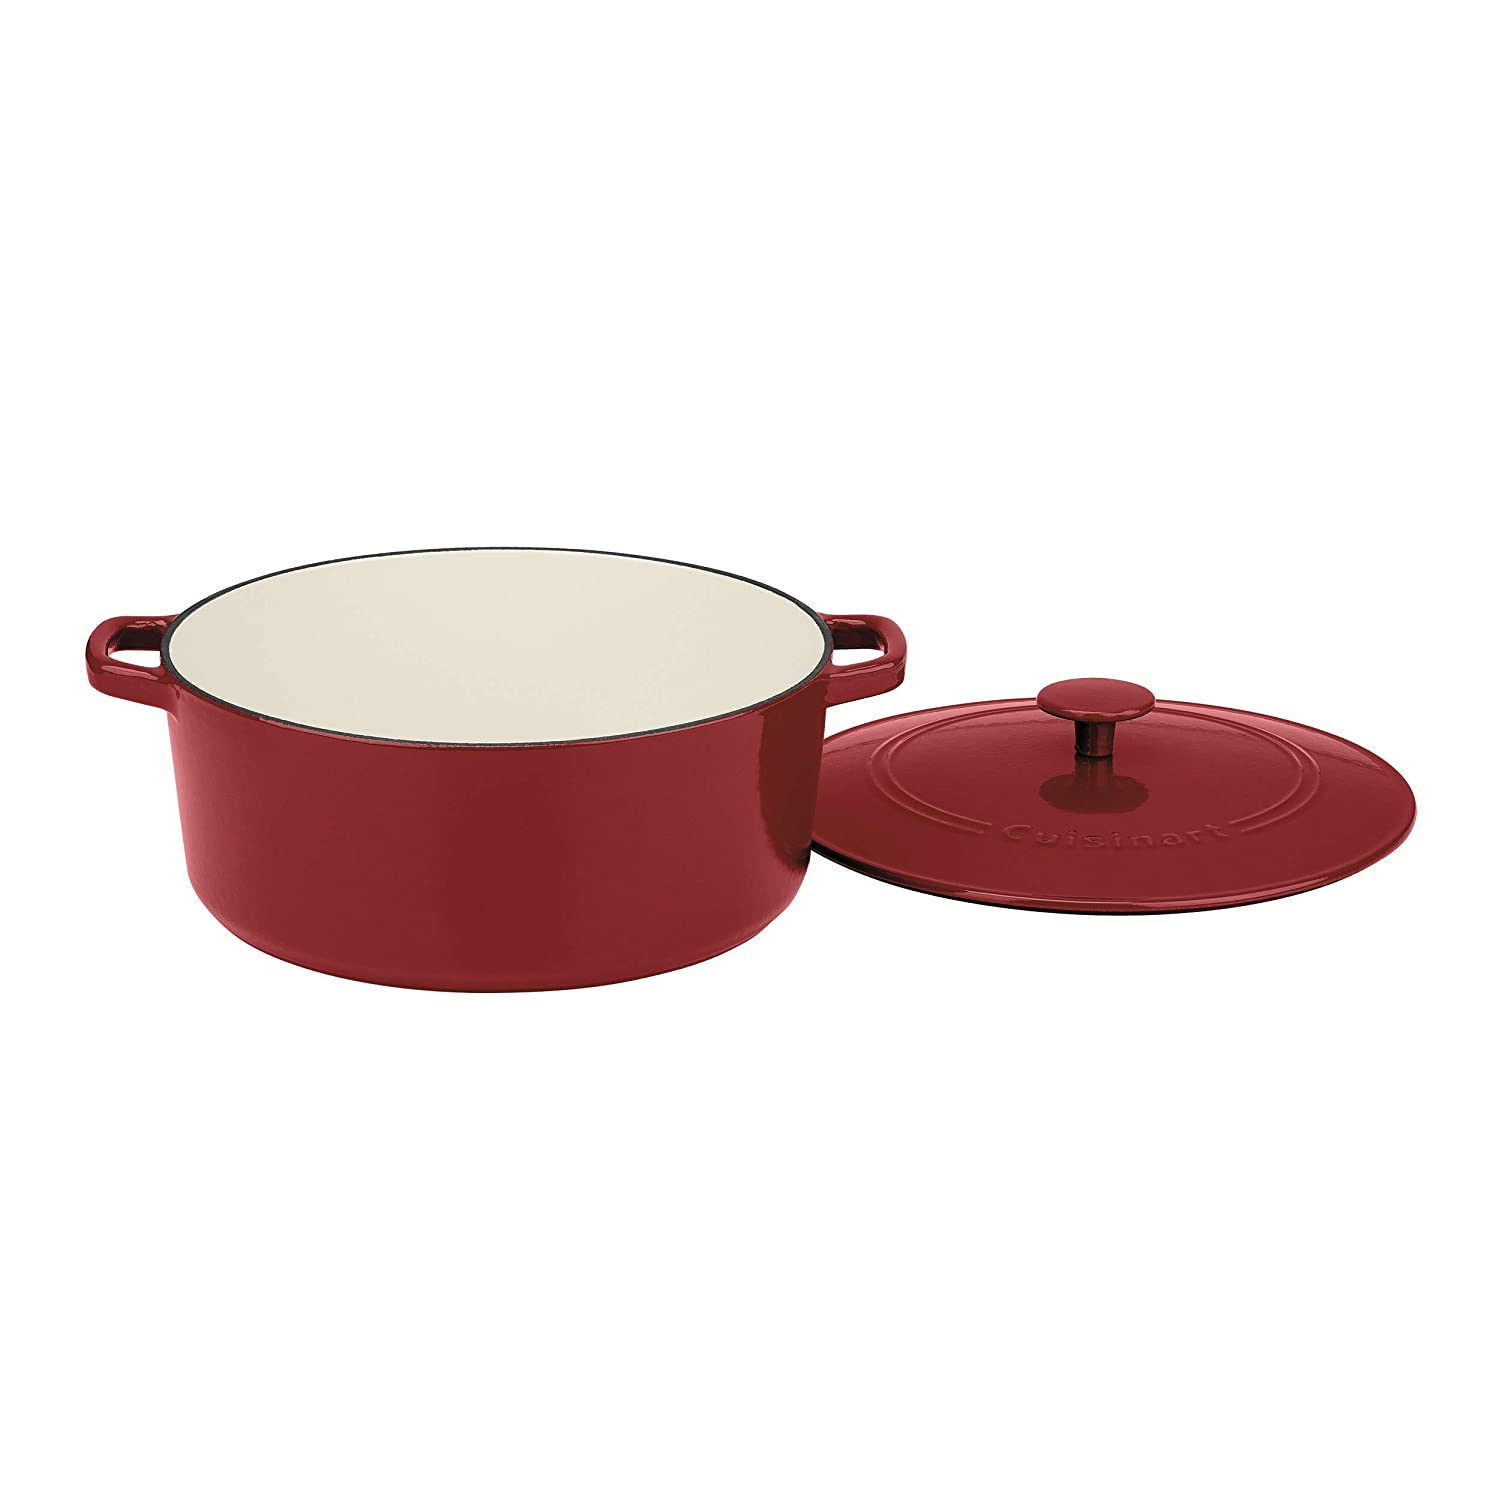 Enameled Cardinal Red 7 Qt  Covered Casserole Cuisinart CI755-30CR Chef's Classic Enameled Cast Iron 5-1 2-Quart Oval Covered Casserole, Cardinal Red